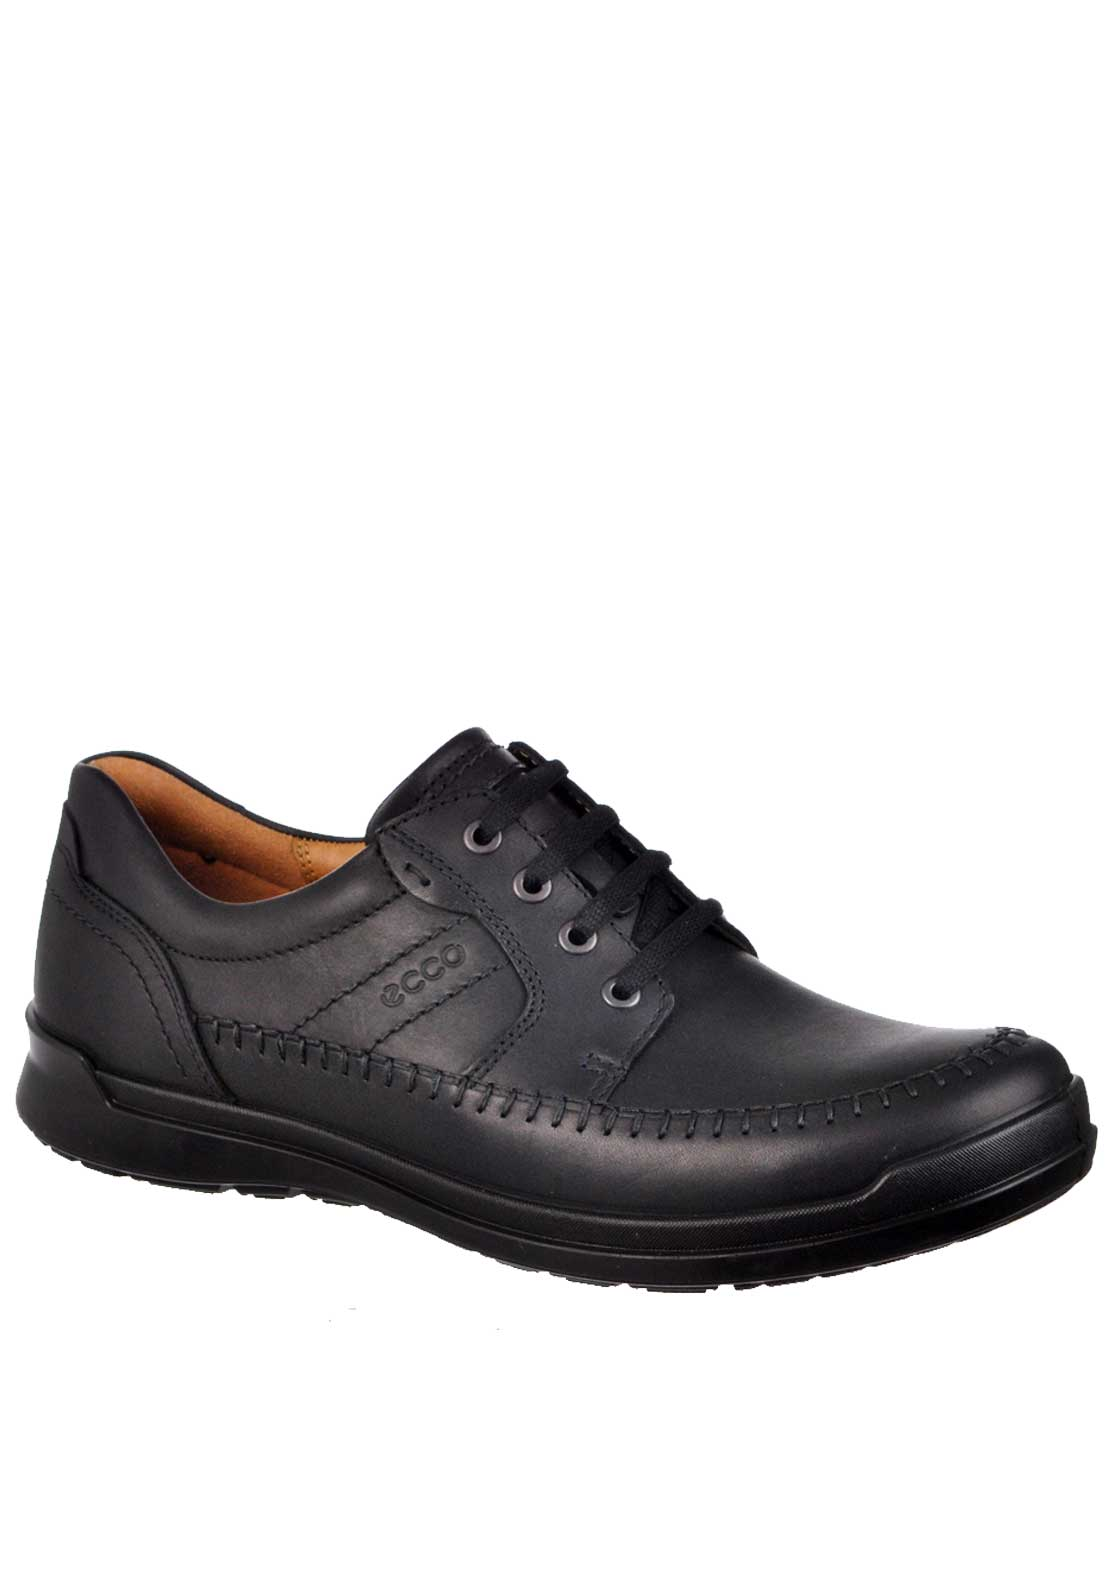 Ecco Mens Howell Lace Up Leather Shoe, Black